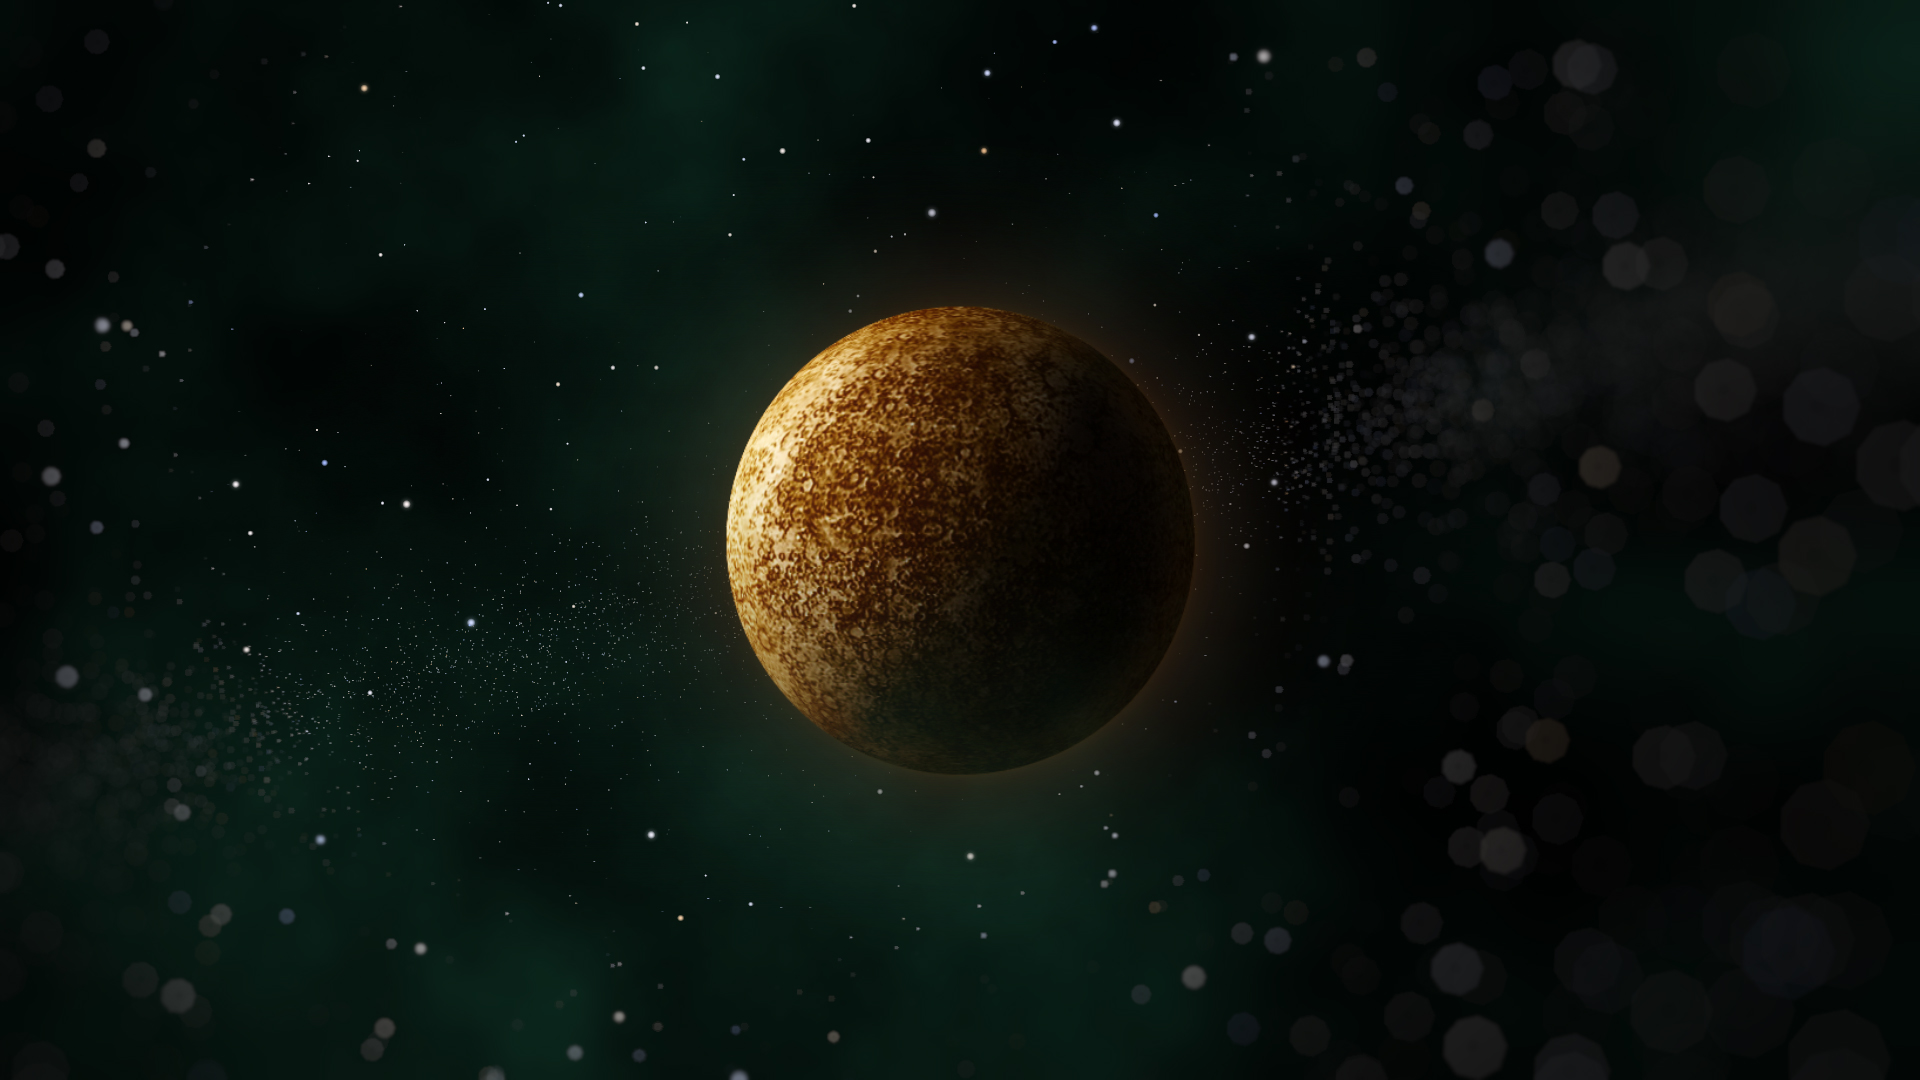 apni astrology wallpapers and - photo #31